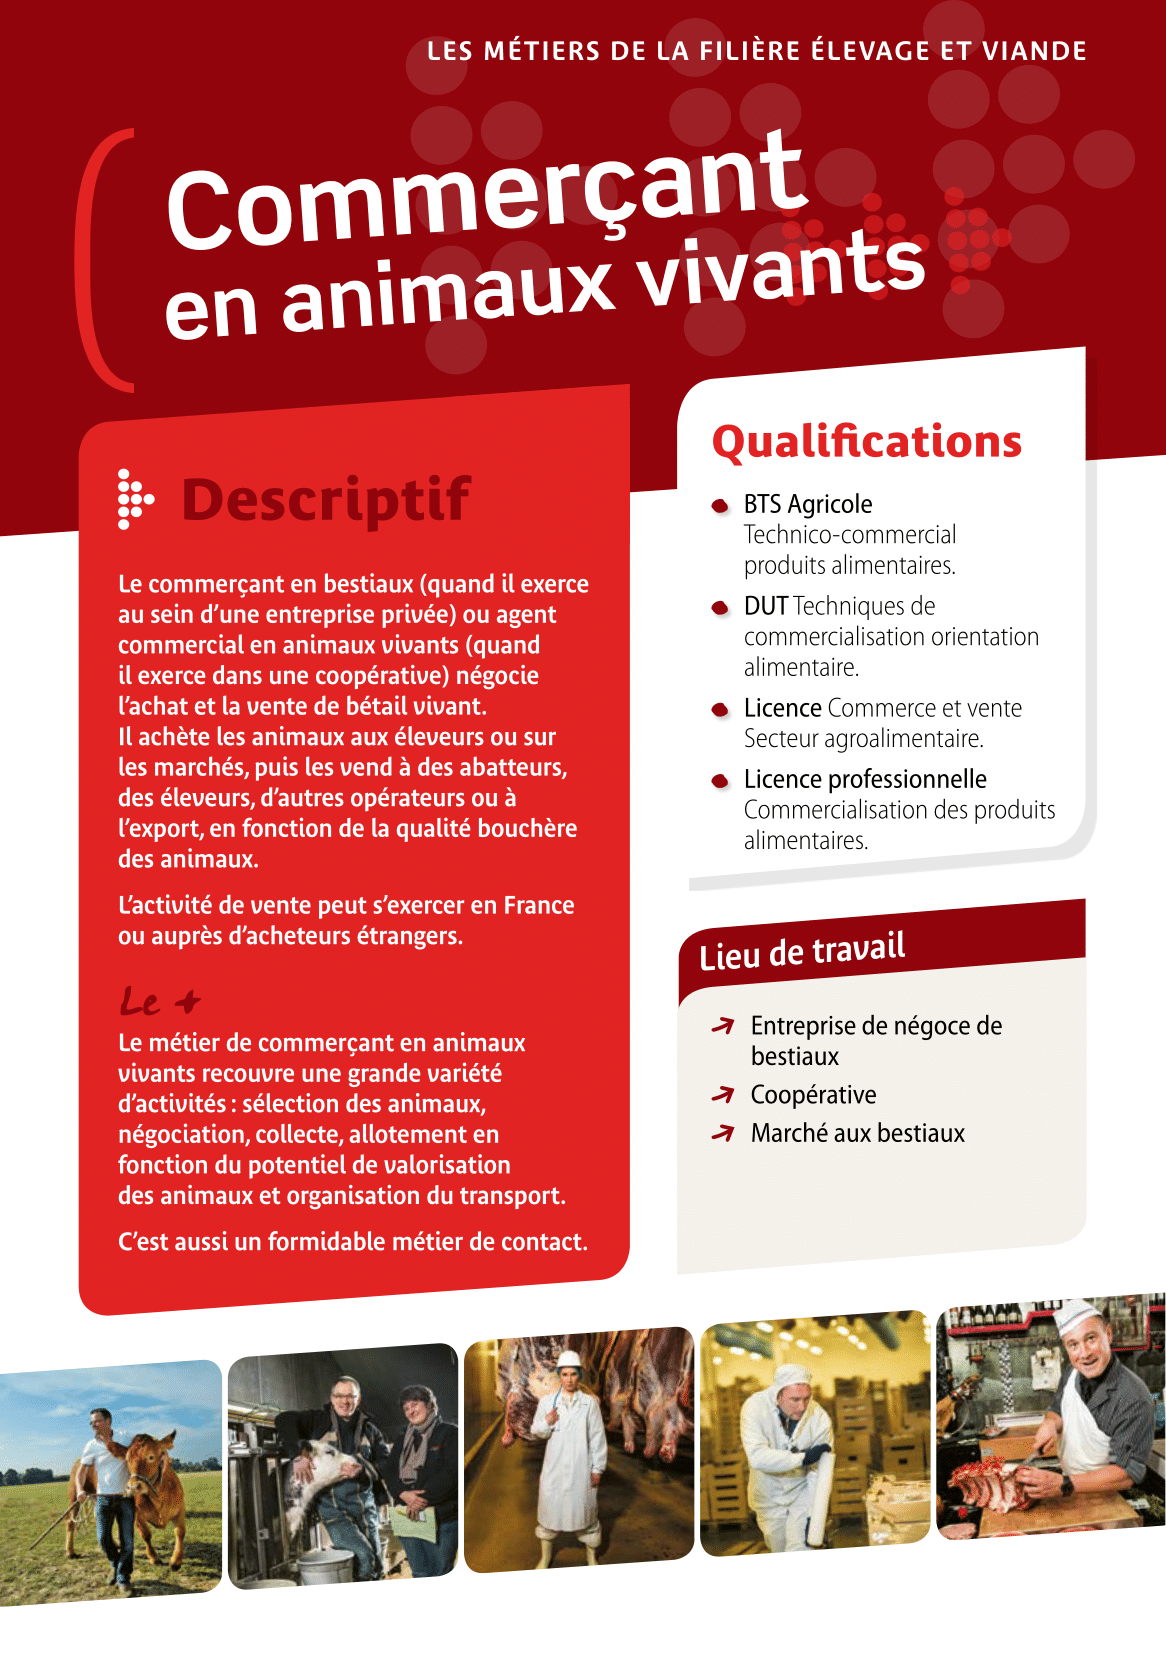 Commerçant en animaux vivants